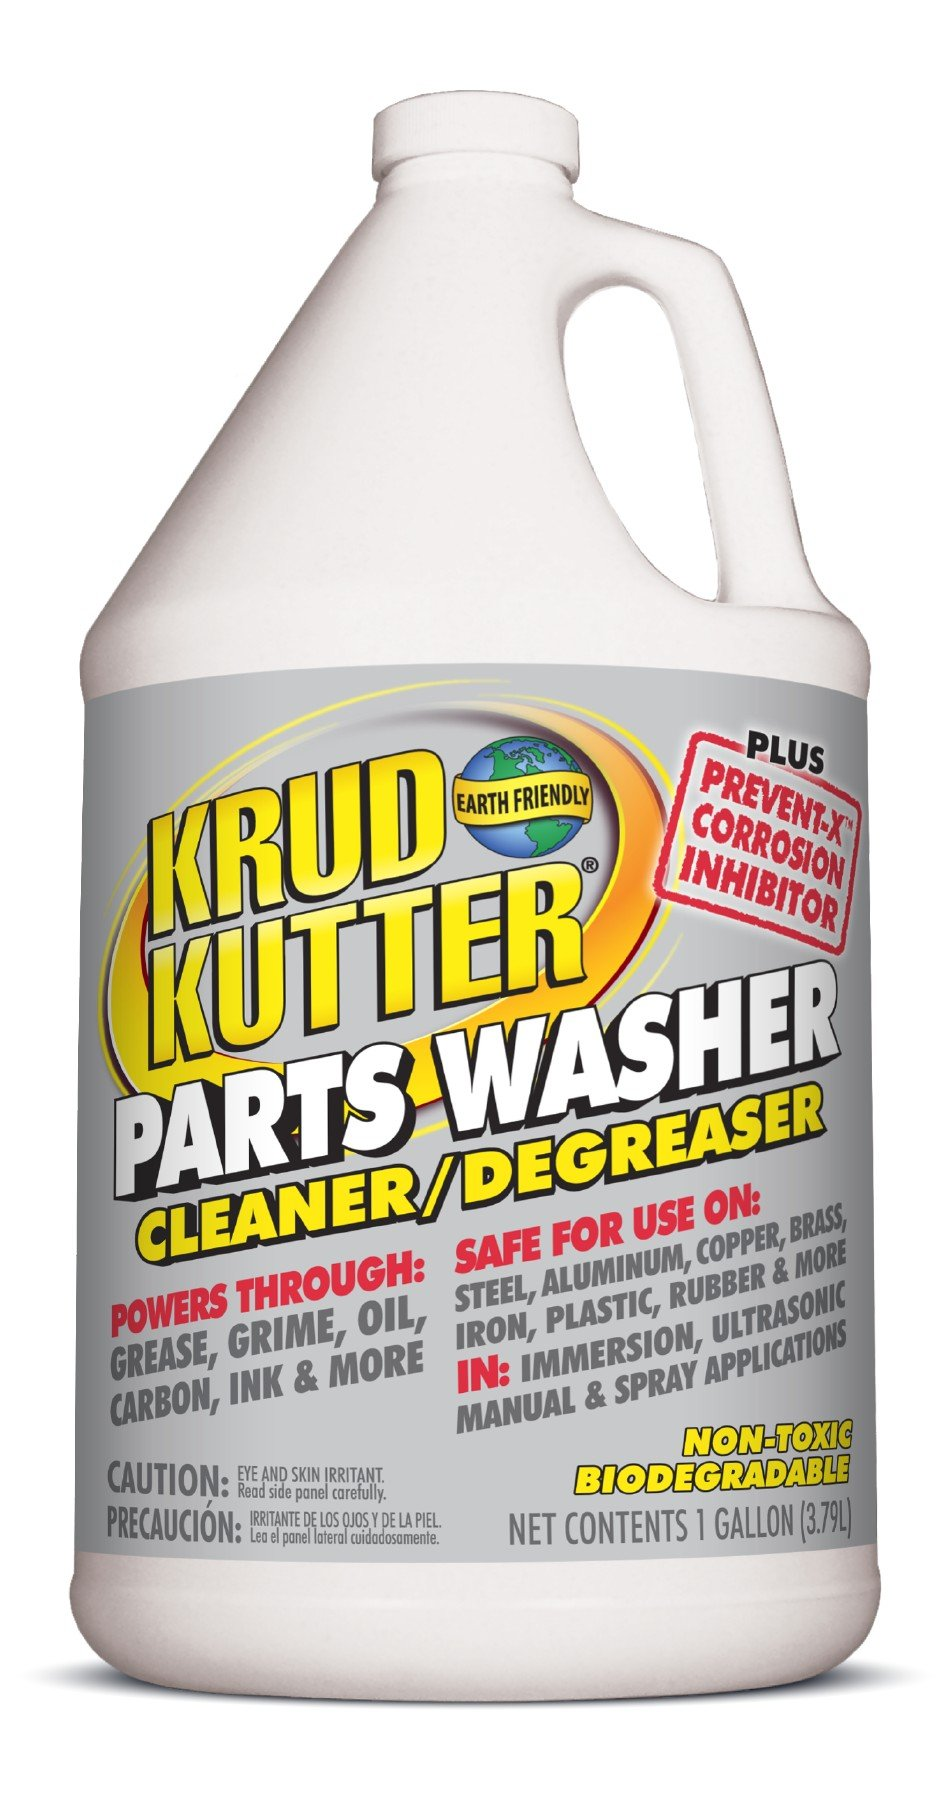 Krud Kutter EC01/2 Parts Washer Cleaner/Degreaser Plus Prevent-X, 1 gal